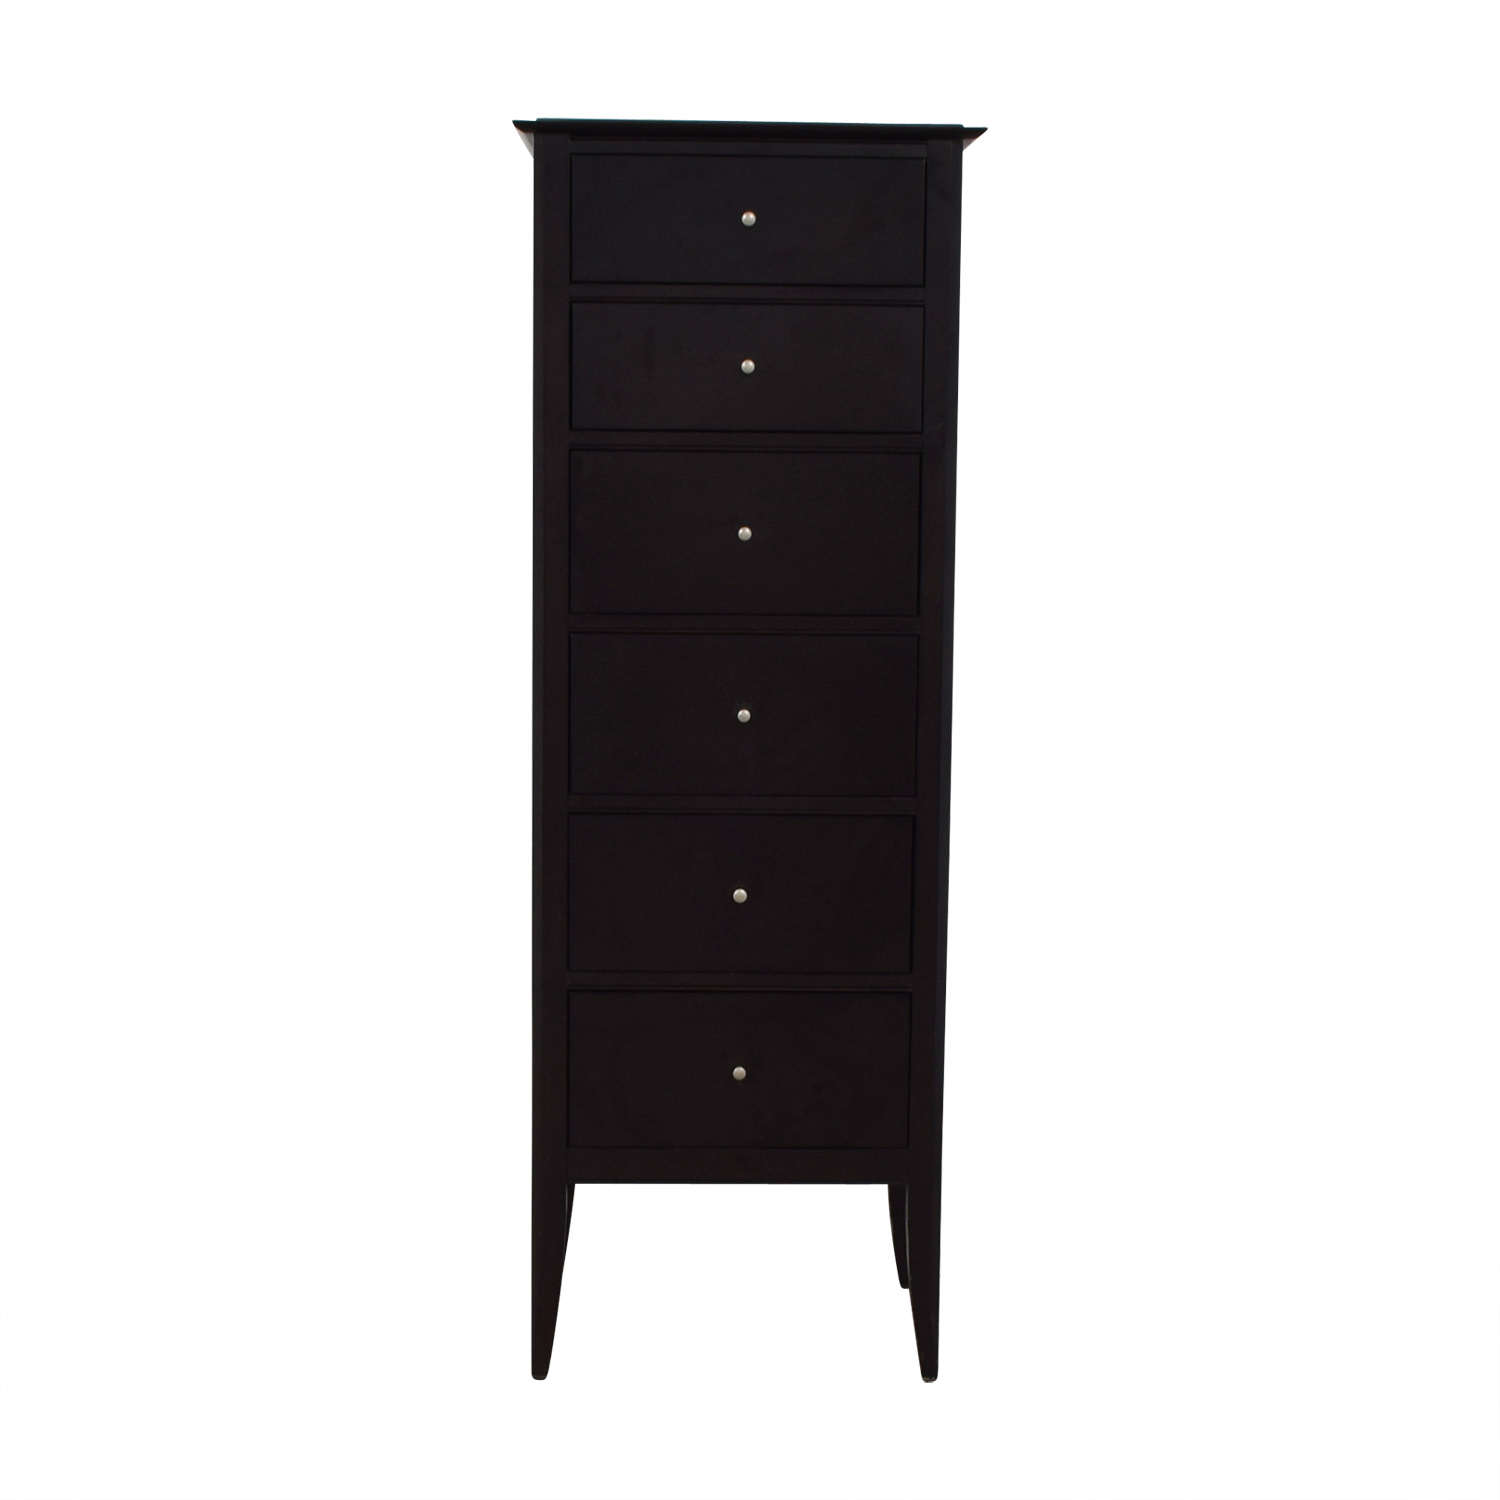 shop Crate & Barrel Black Six-Drawer Tall Dresser Crate & Barrel Sofas